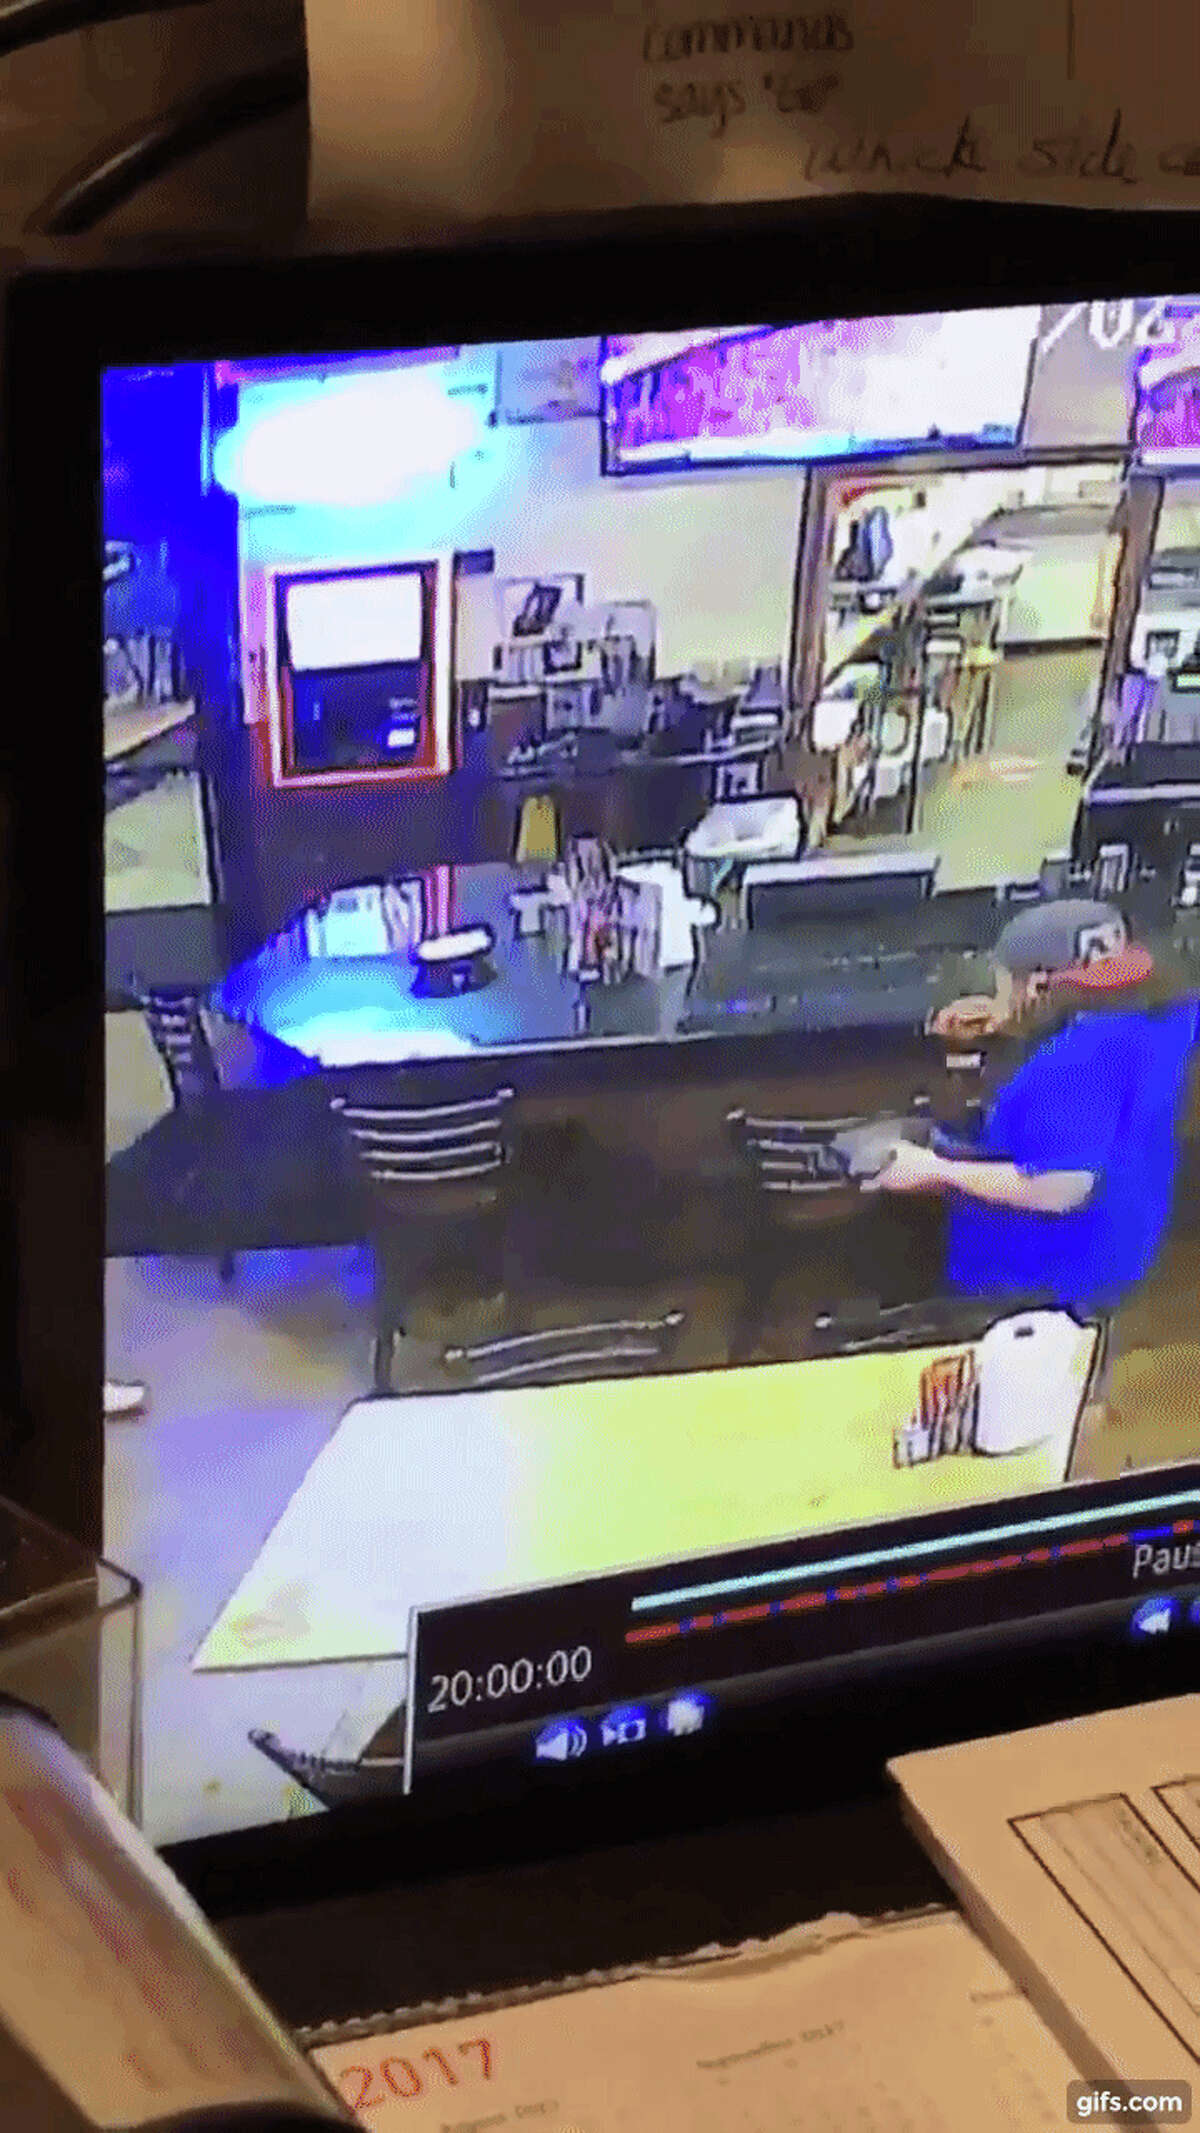 A viral video captured at a Bayou City Wings in Baytown shows a woman trying to knock some takeout food from a man's hand and failing miserably.